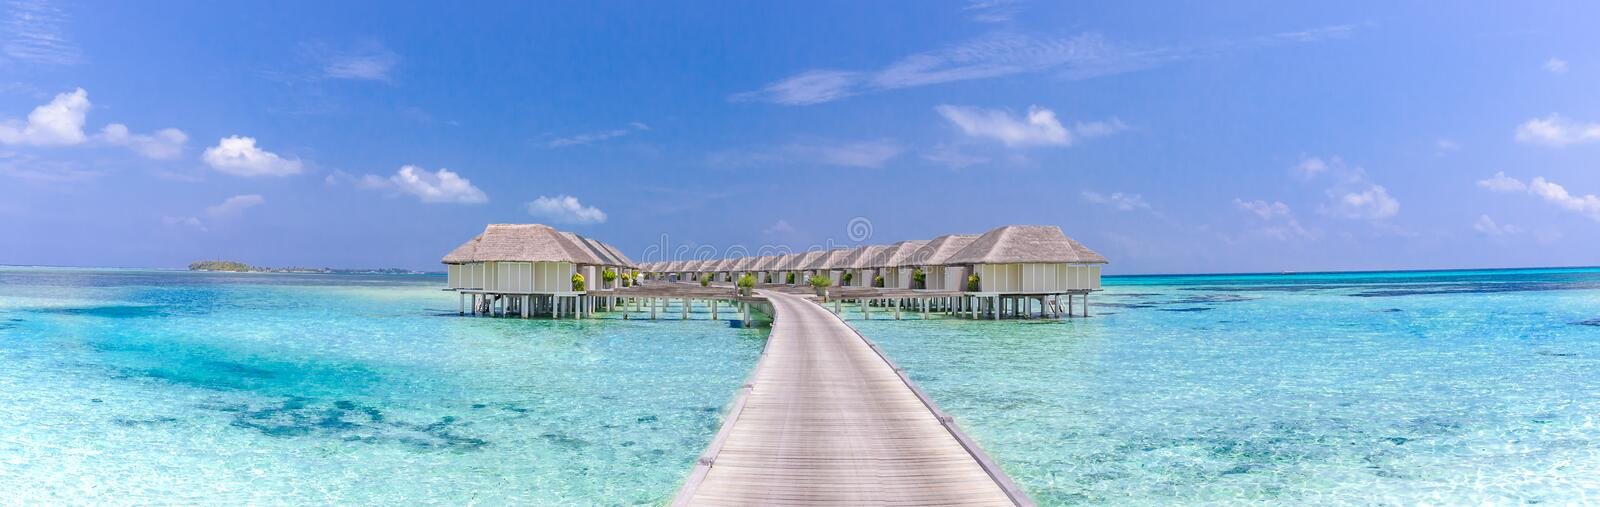 Panoramic view of a Maldives tropical island, luxury water villas over calm blue sea royalty free stock image